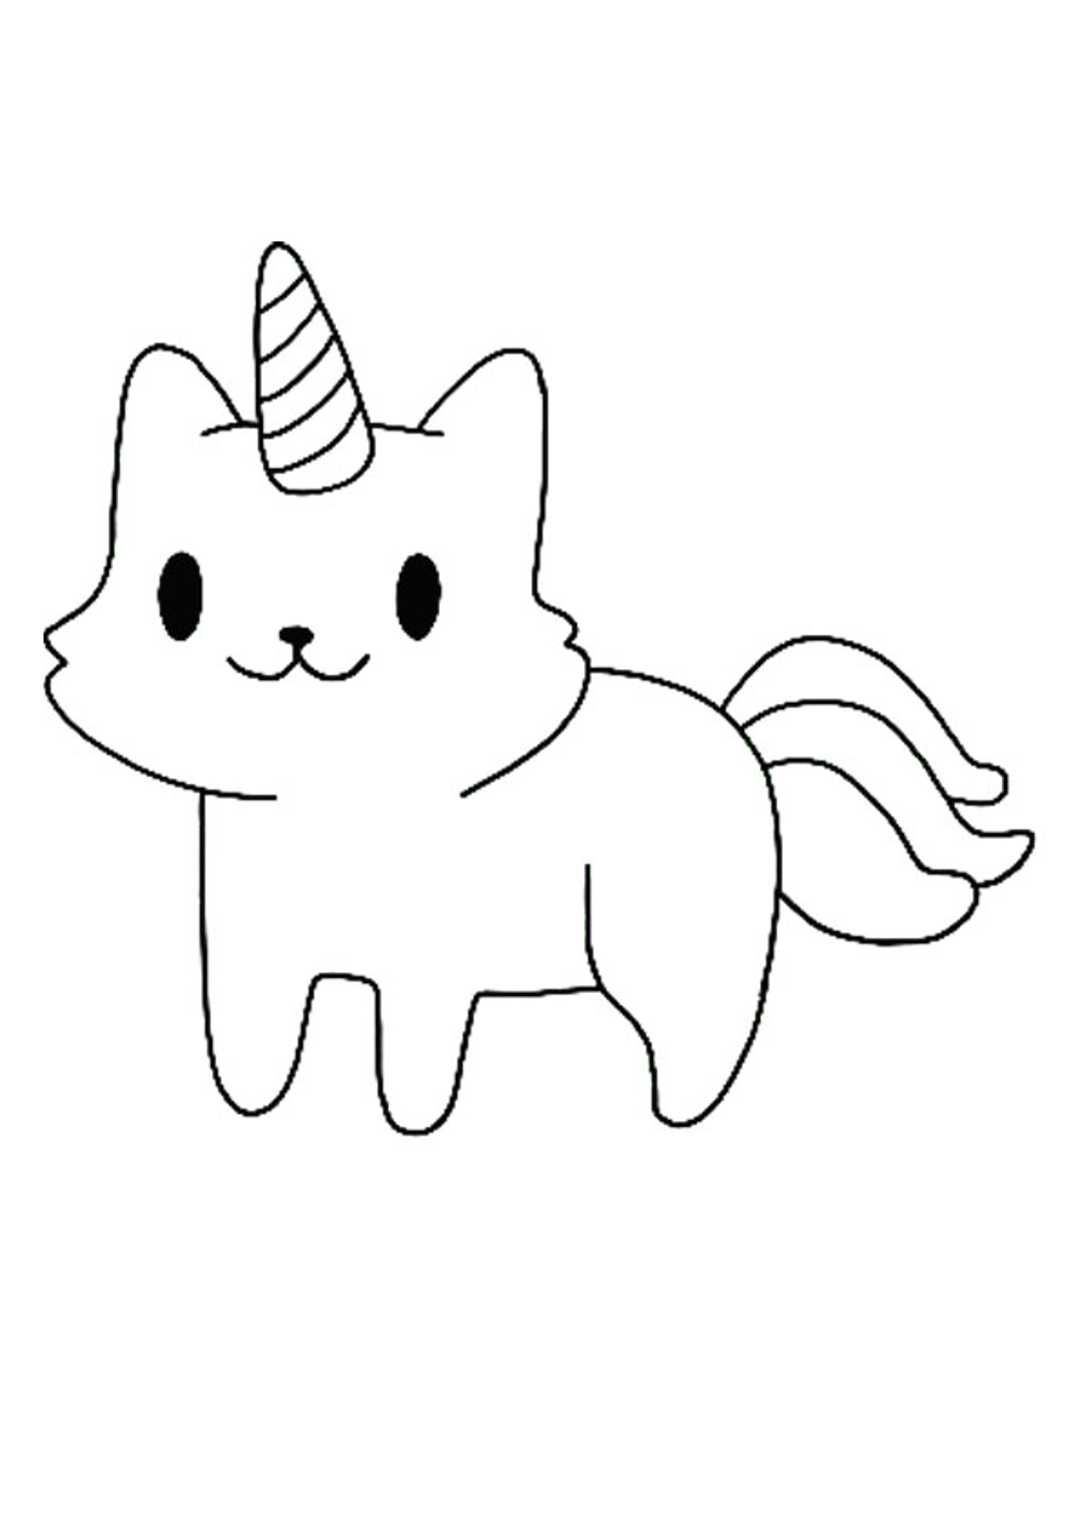 Cute Little Cat Unicorn Coloring Page Unicorn Coloring Pages Mermaid Coloring Pages Mandala Coloring Pages